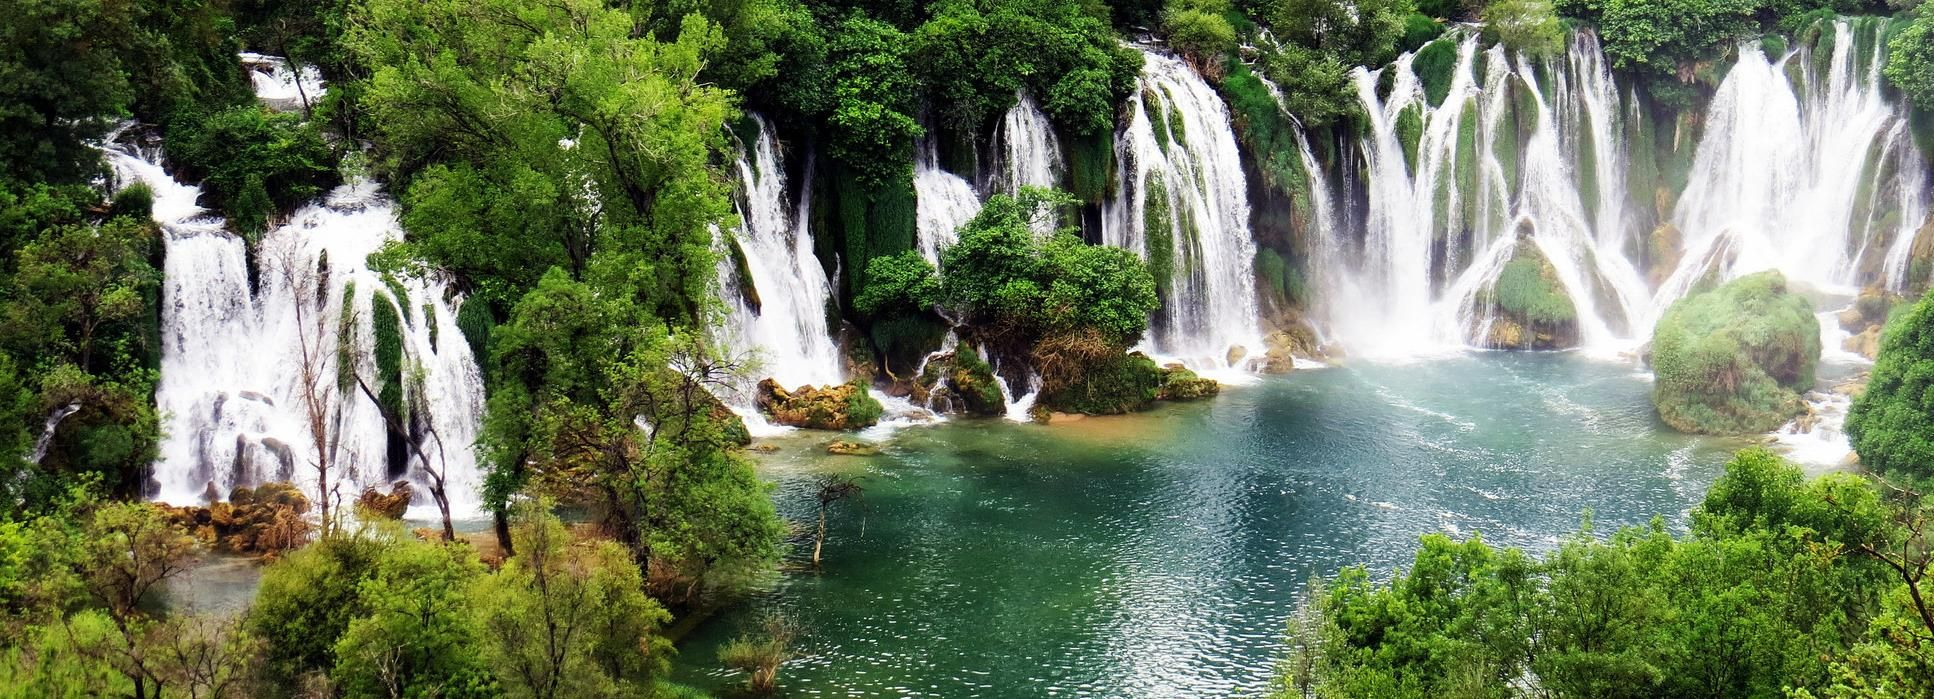 Mostar and Kravica Waterfalls with Turkish House Visit